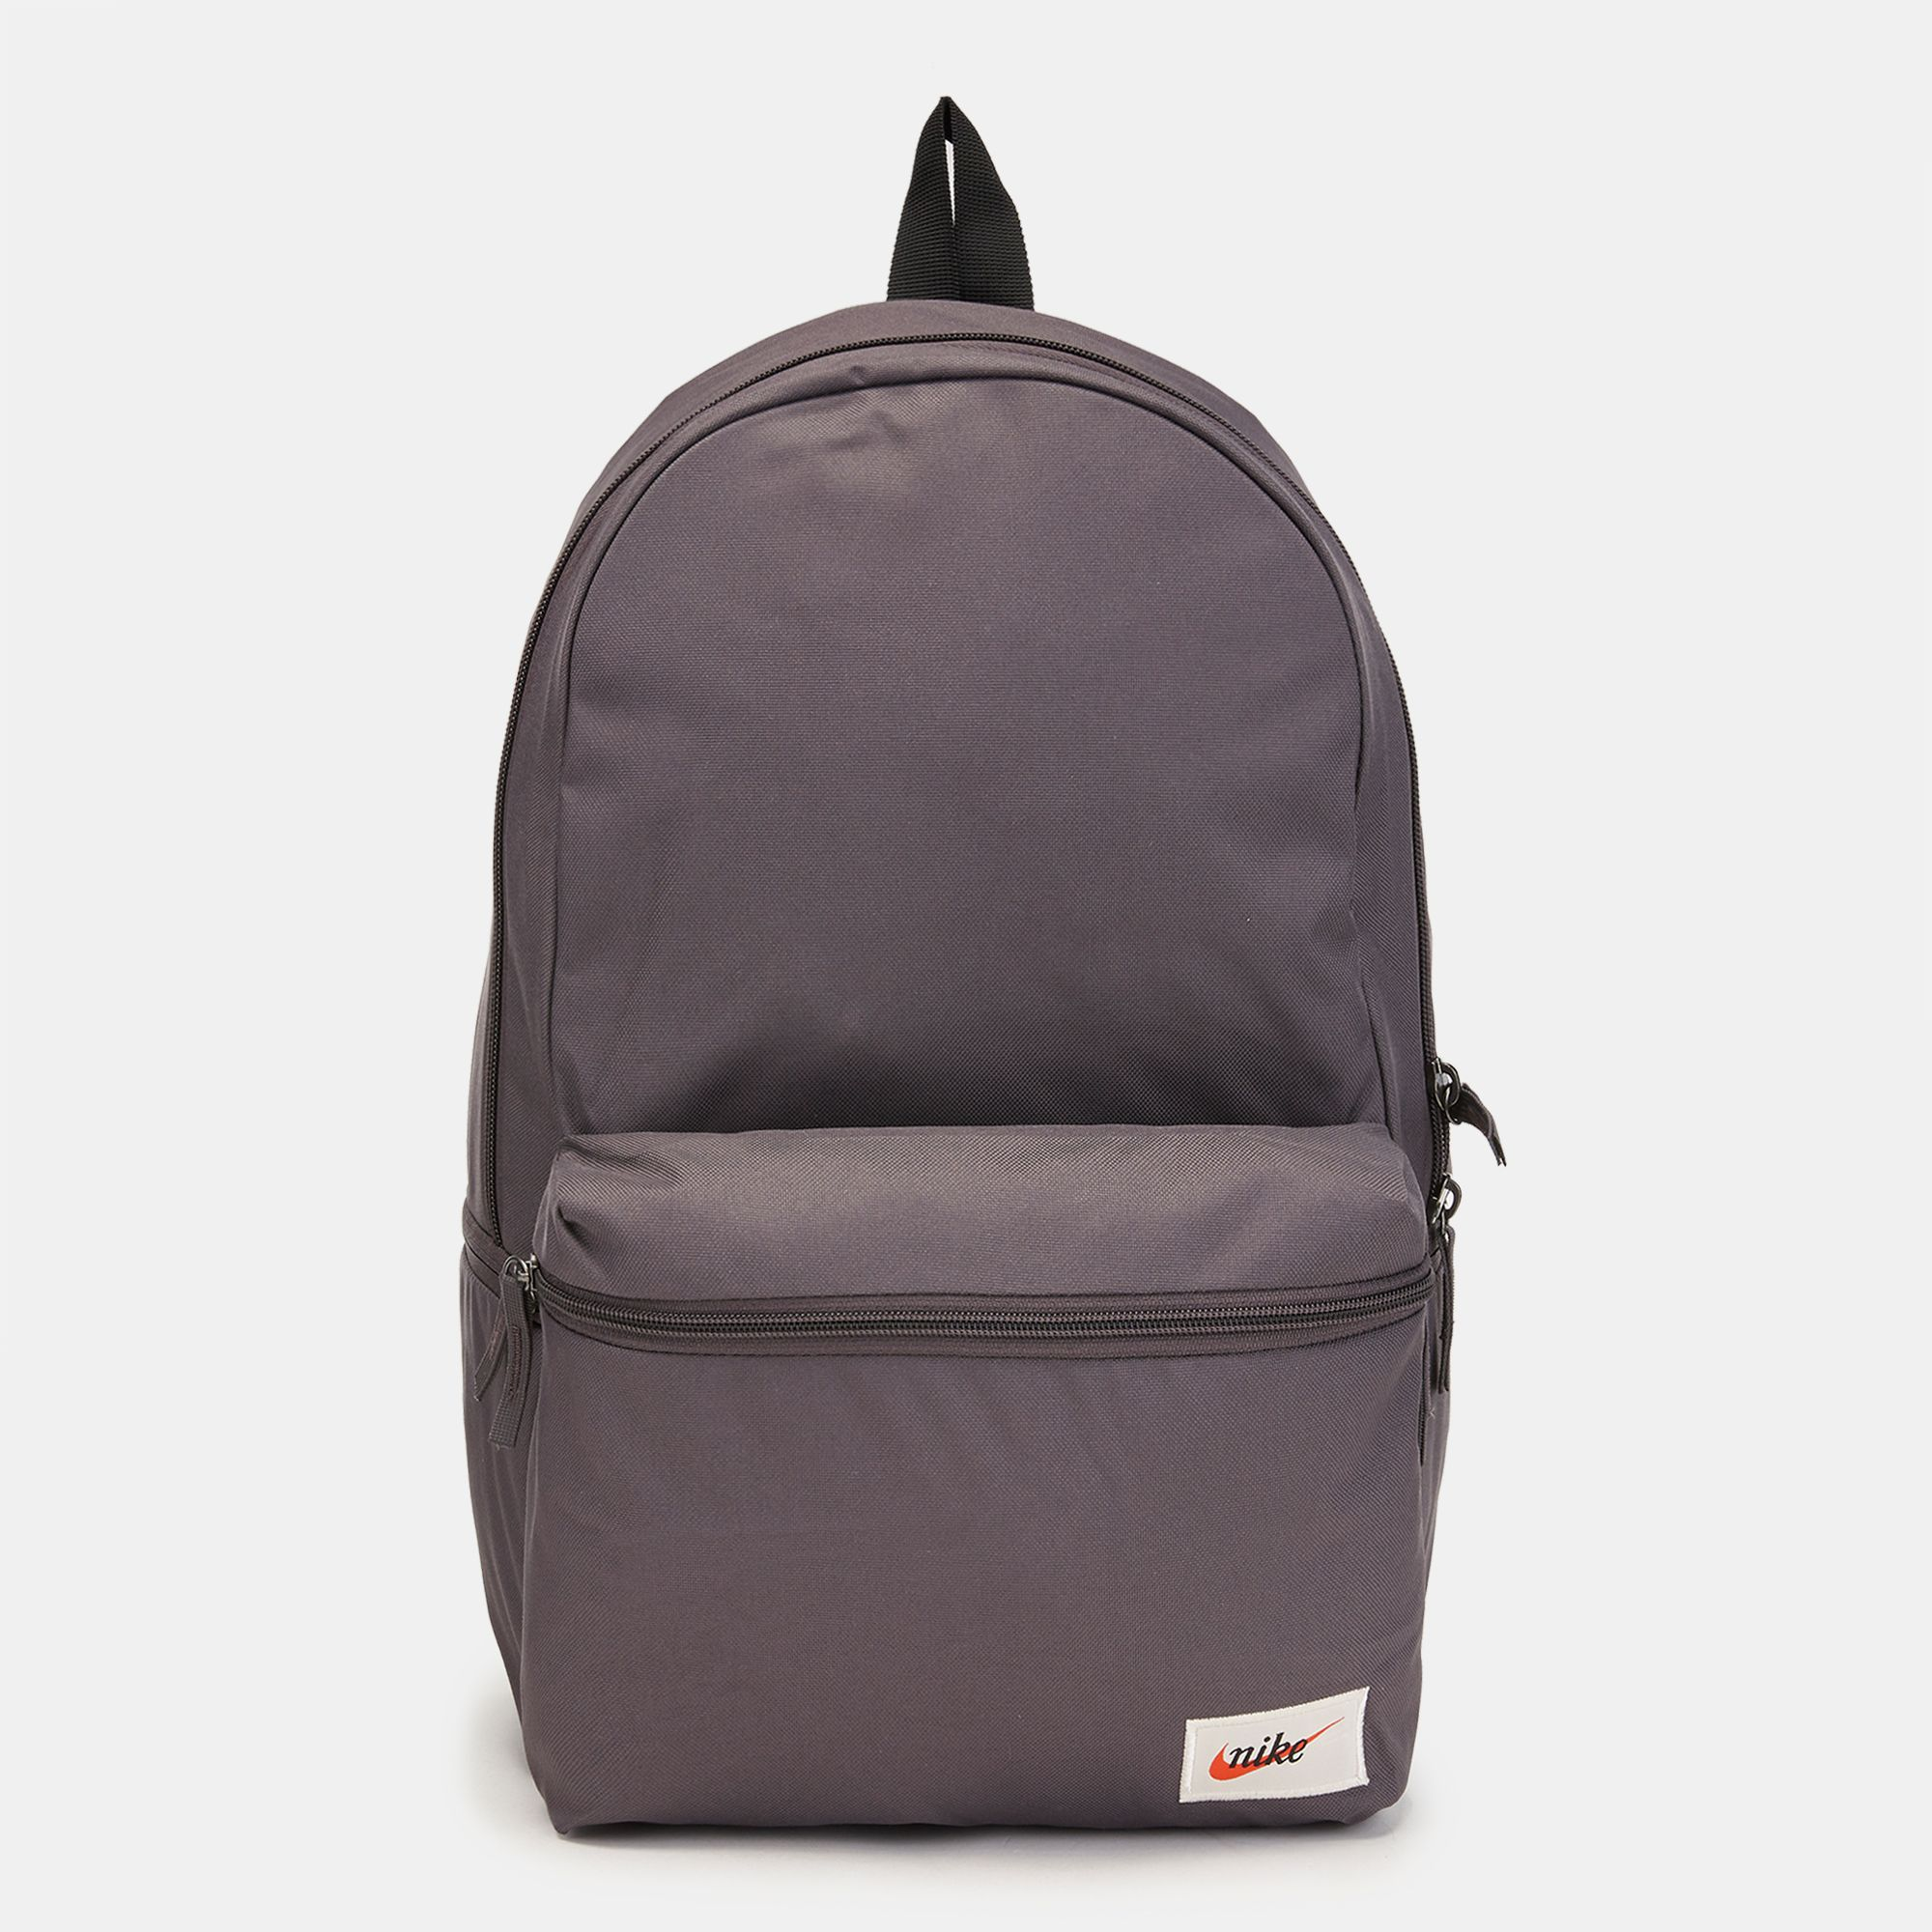 34ad8f877cf50 Nike Heritage Backpack